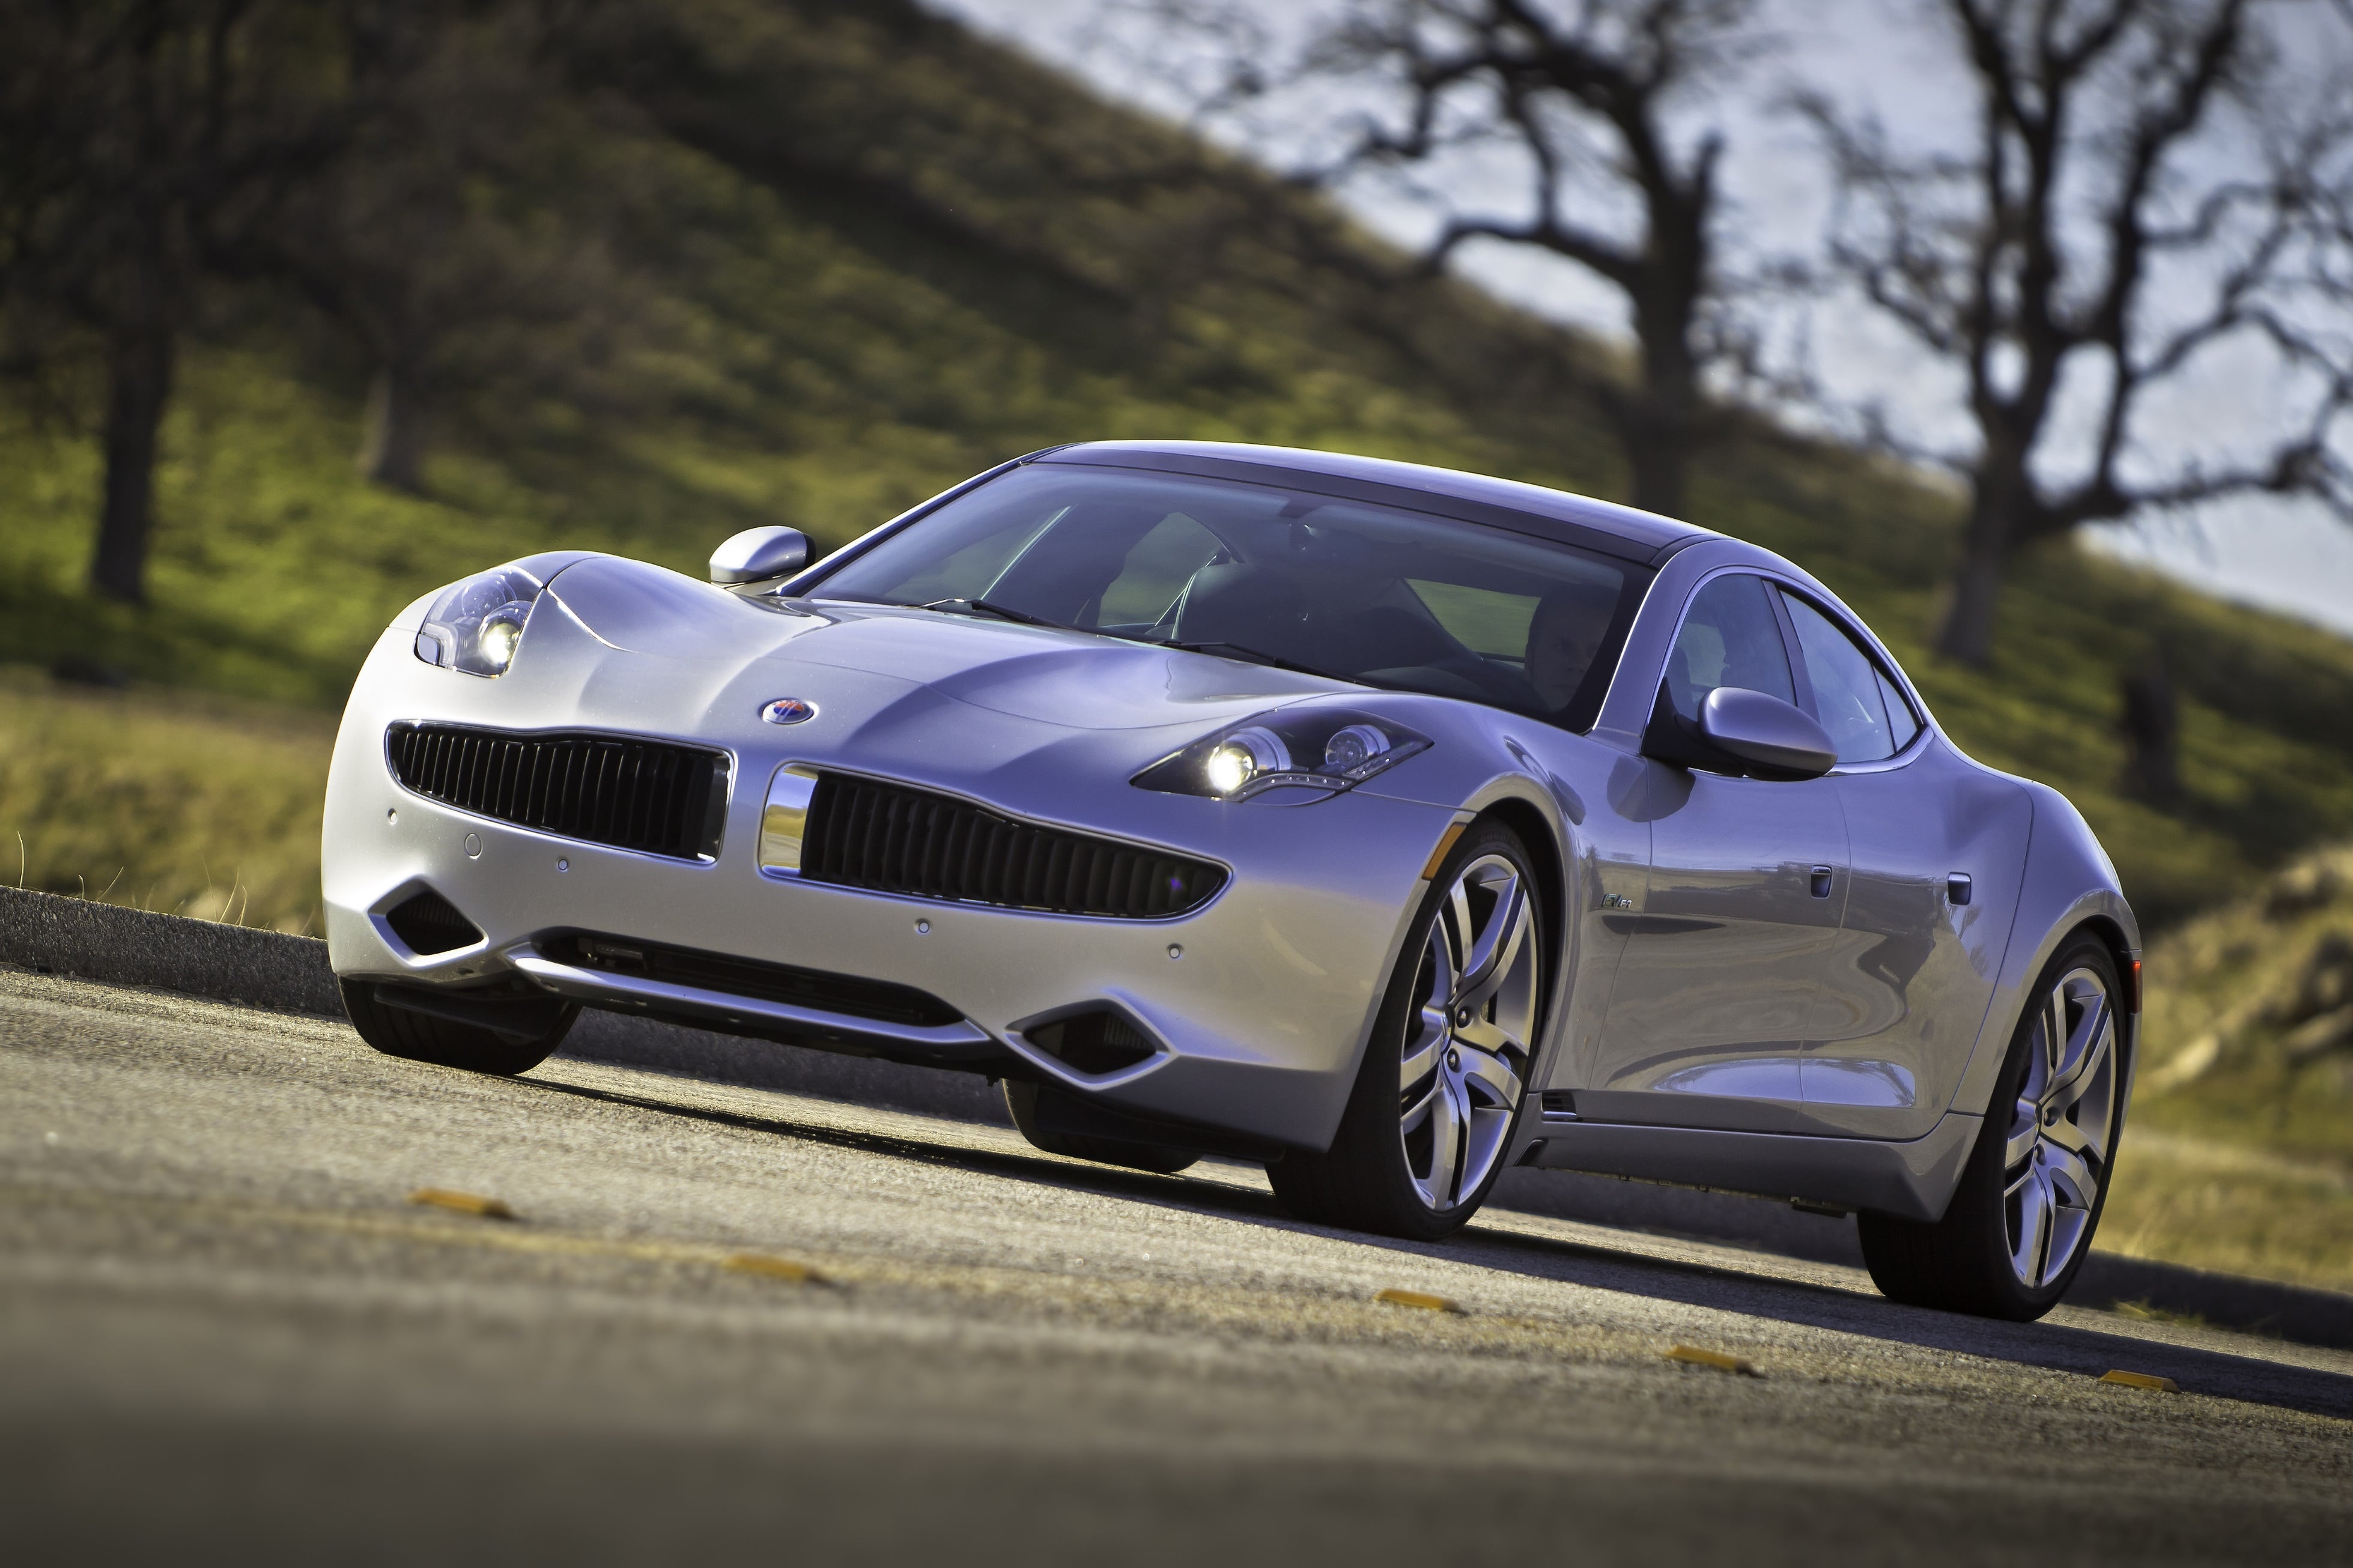 Fisker Karma Full hd wallpapers